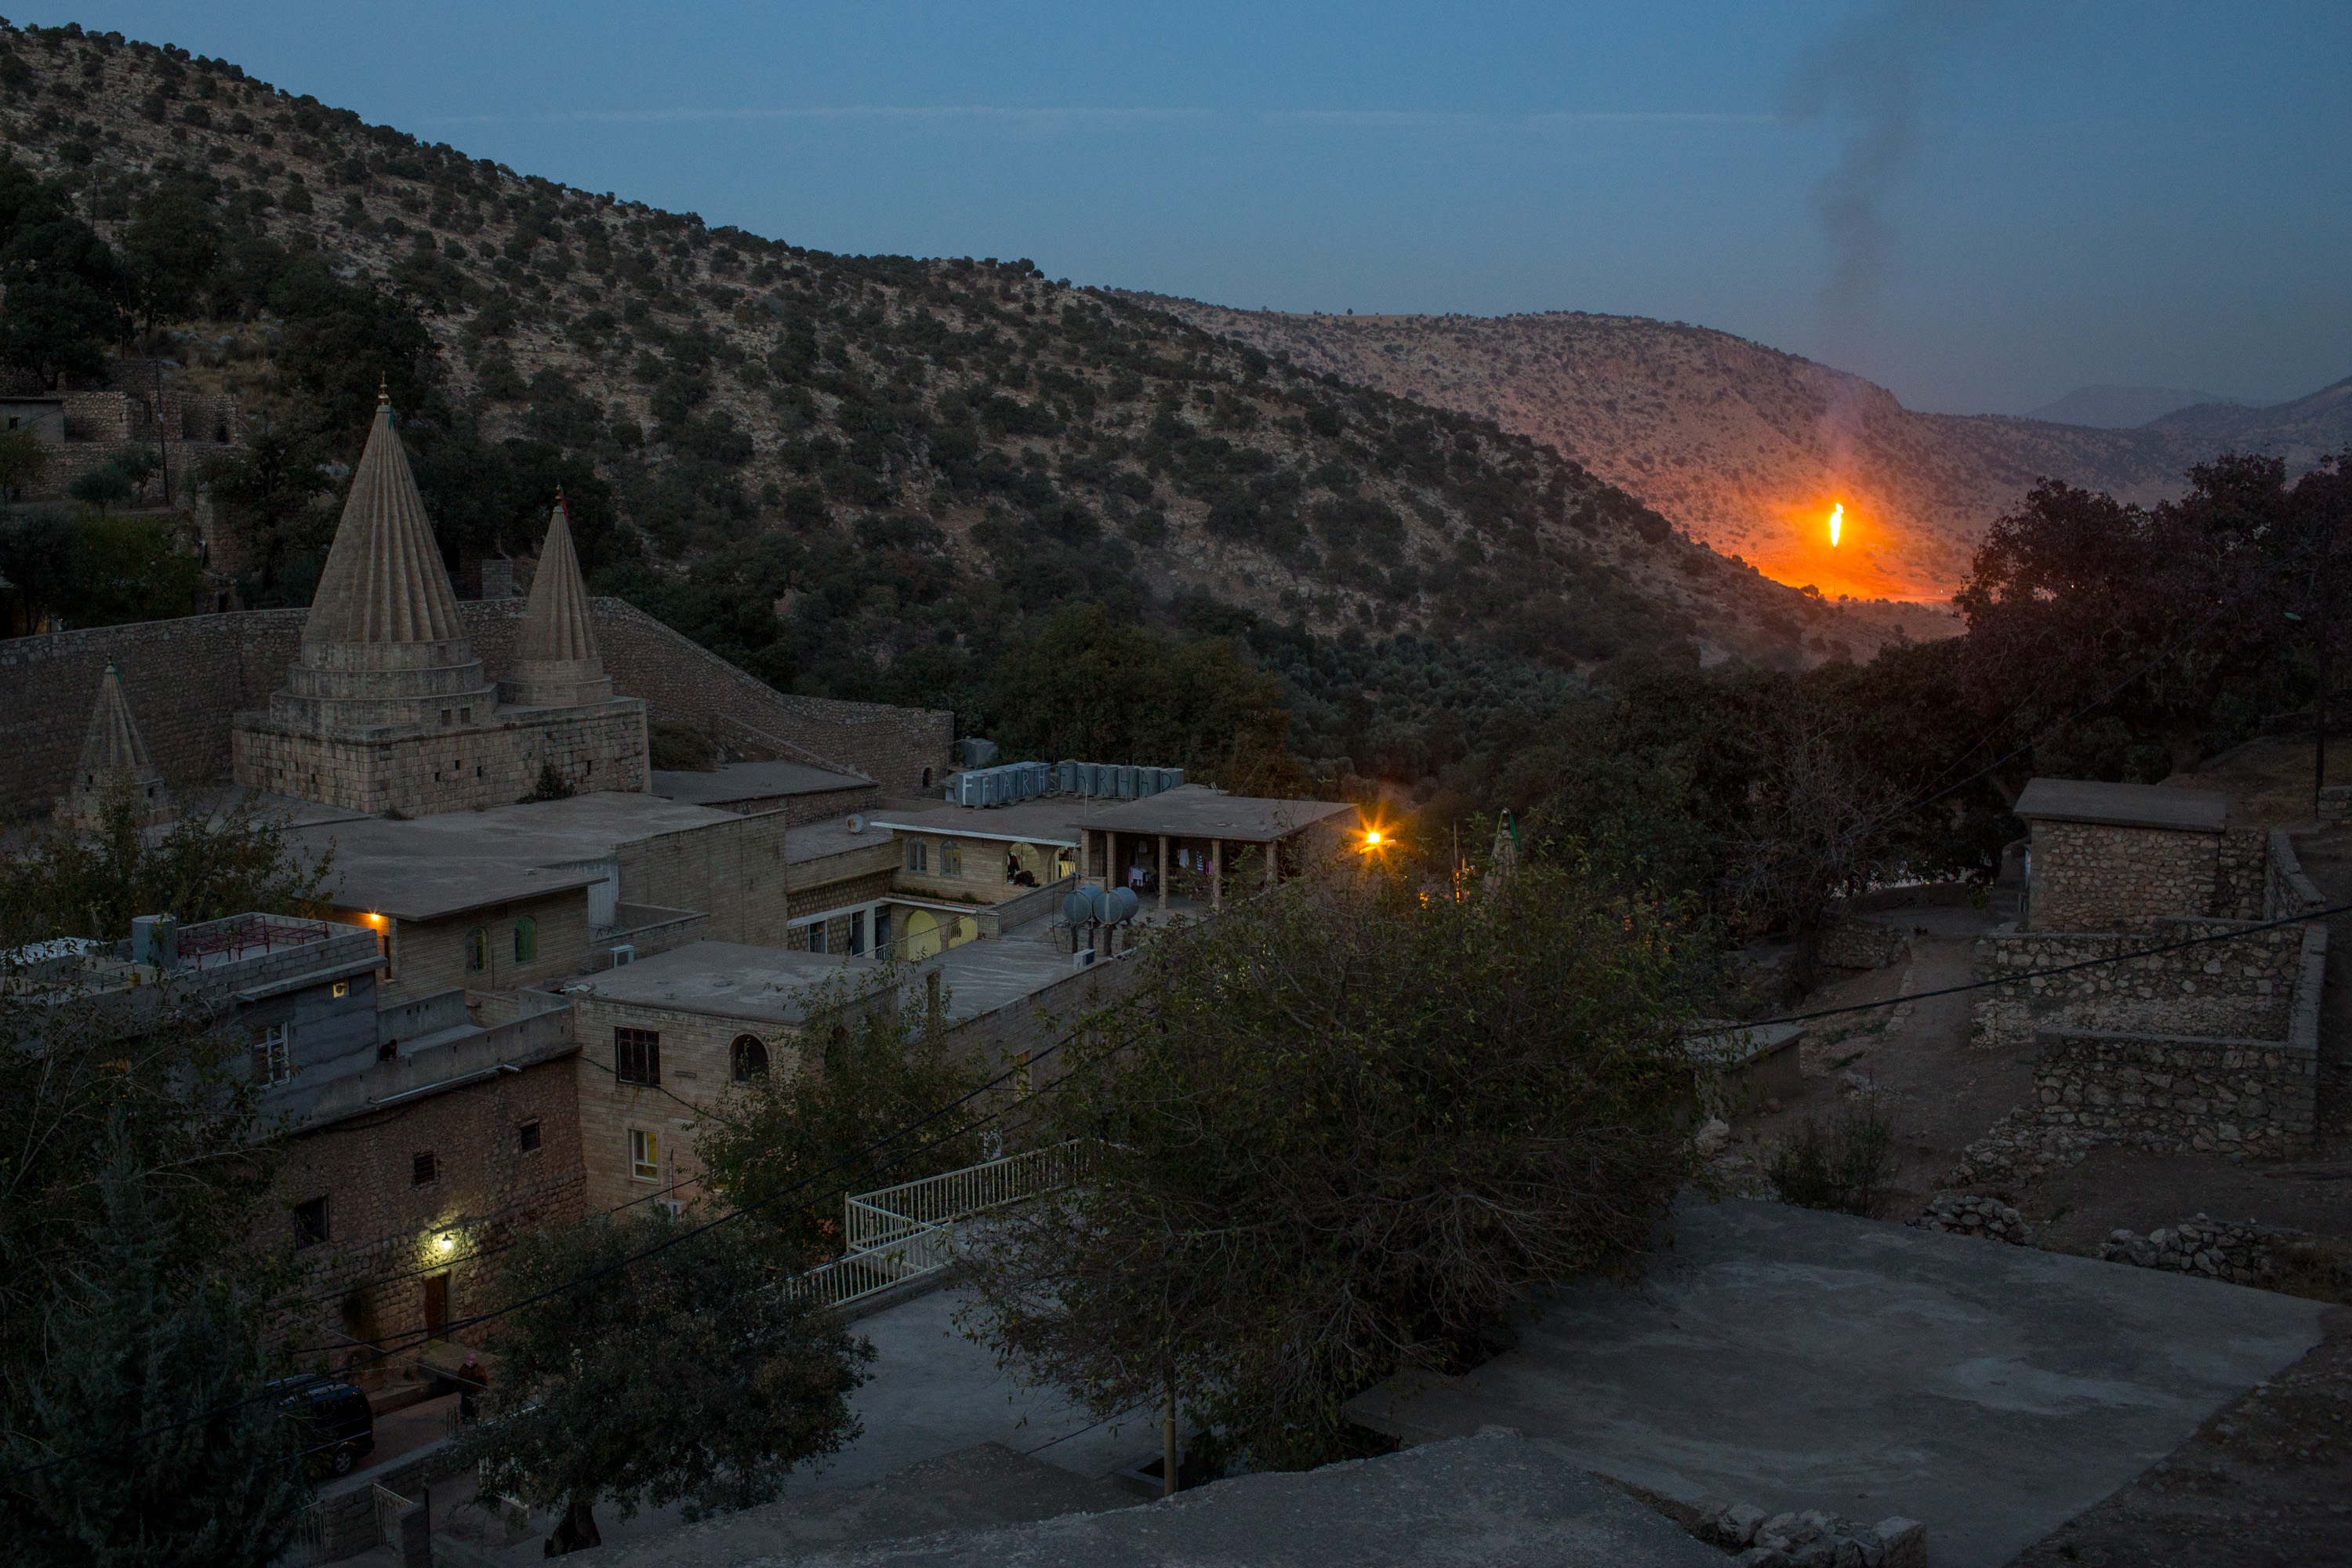 An oil refinery is seen behind the holiest temple of the Yazidi faith after Friday rituals on Nov. 11, 2016 in Lalish, Iraq. In 2014, thousands of Yazidis fled to the villages of Lalish and Shekhan after ISIS took control of Sinjar and other Yazidi populated towns. Many Yazidi resettled in Mosul and Bashiqah but were forced to flee again when ISIS took control of the cities.